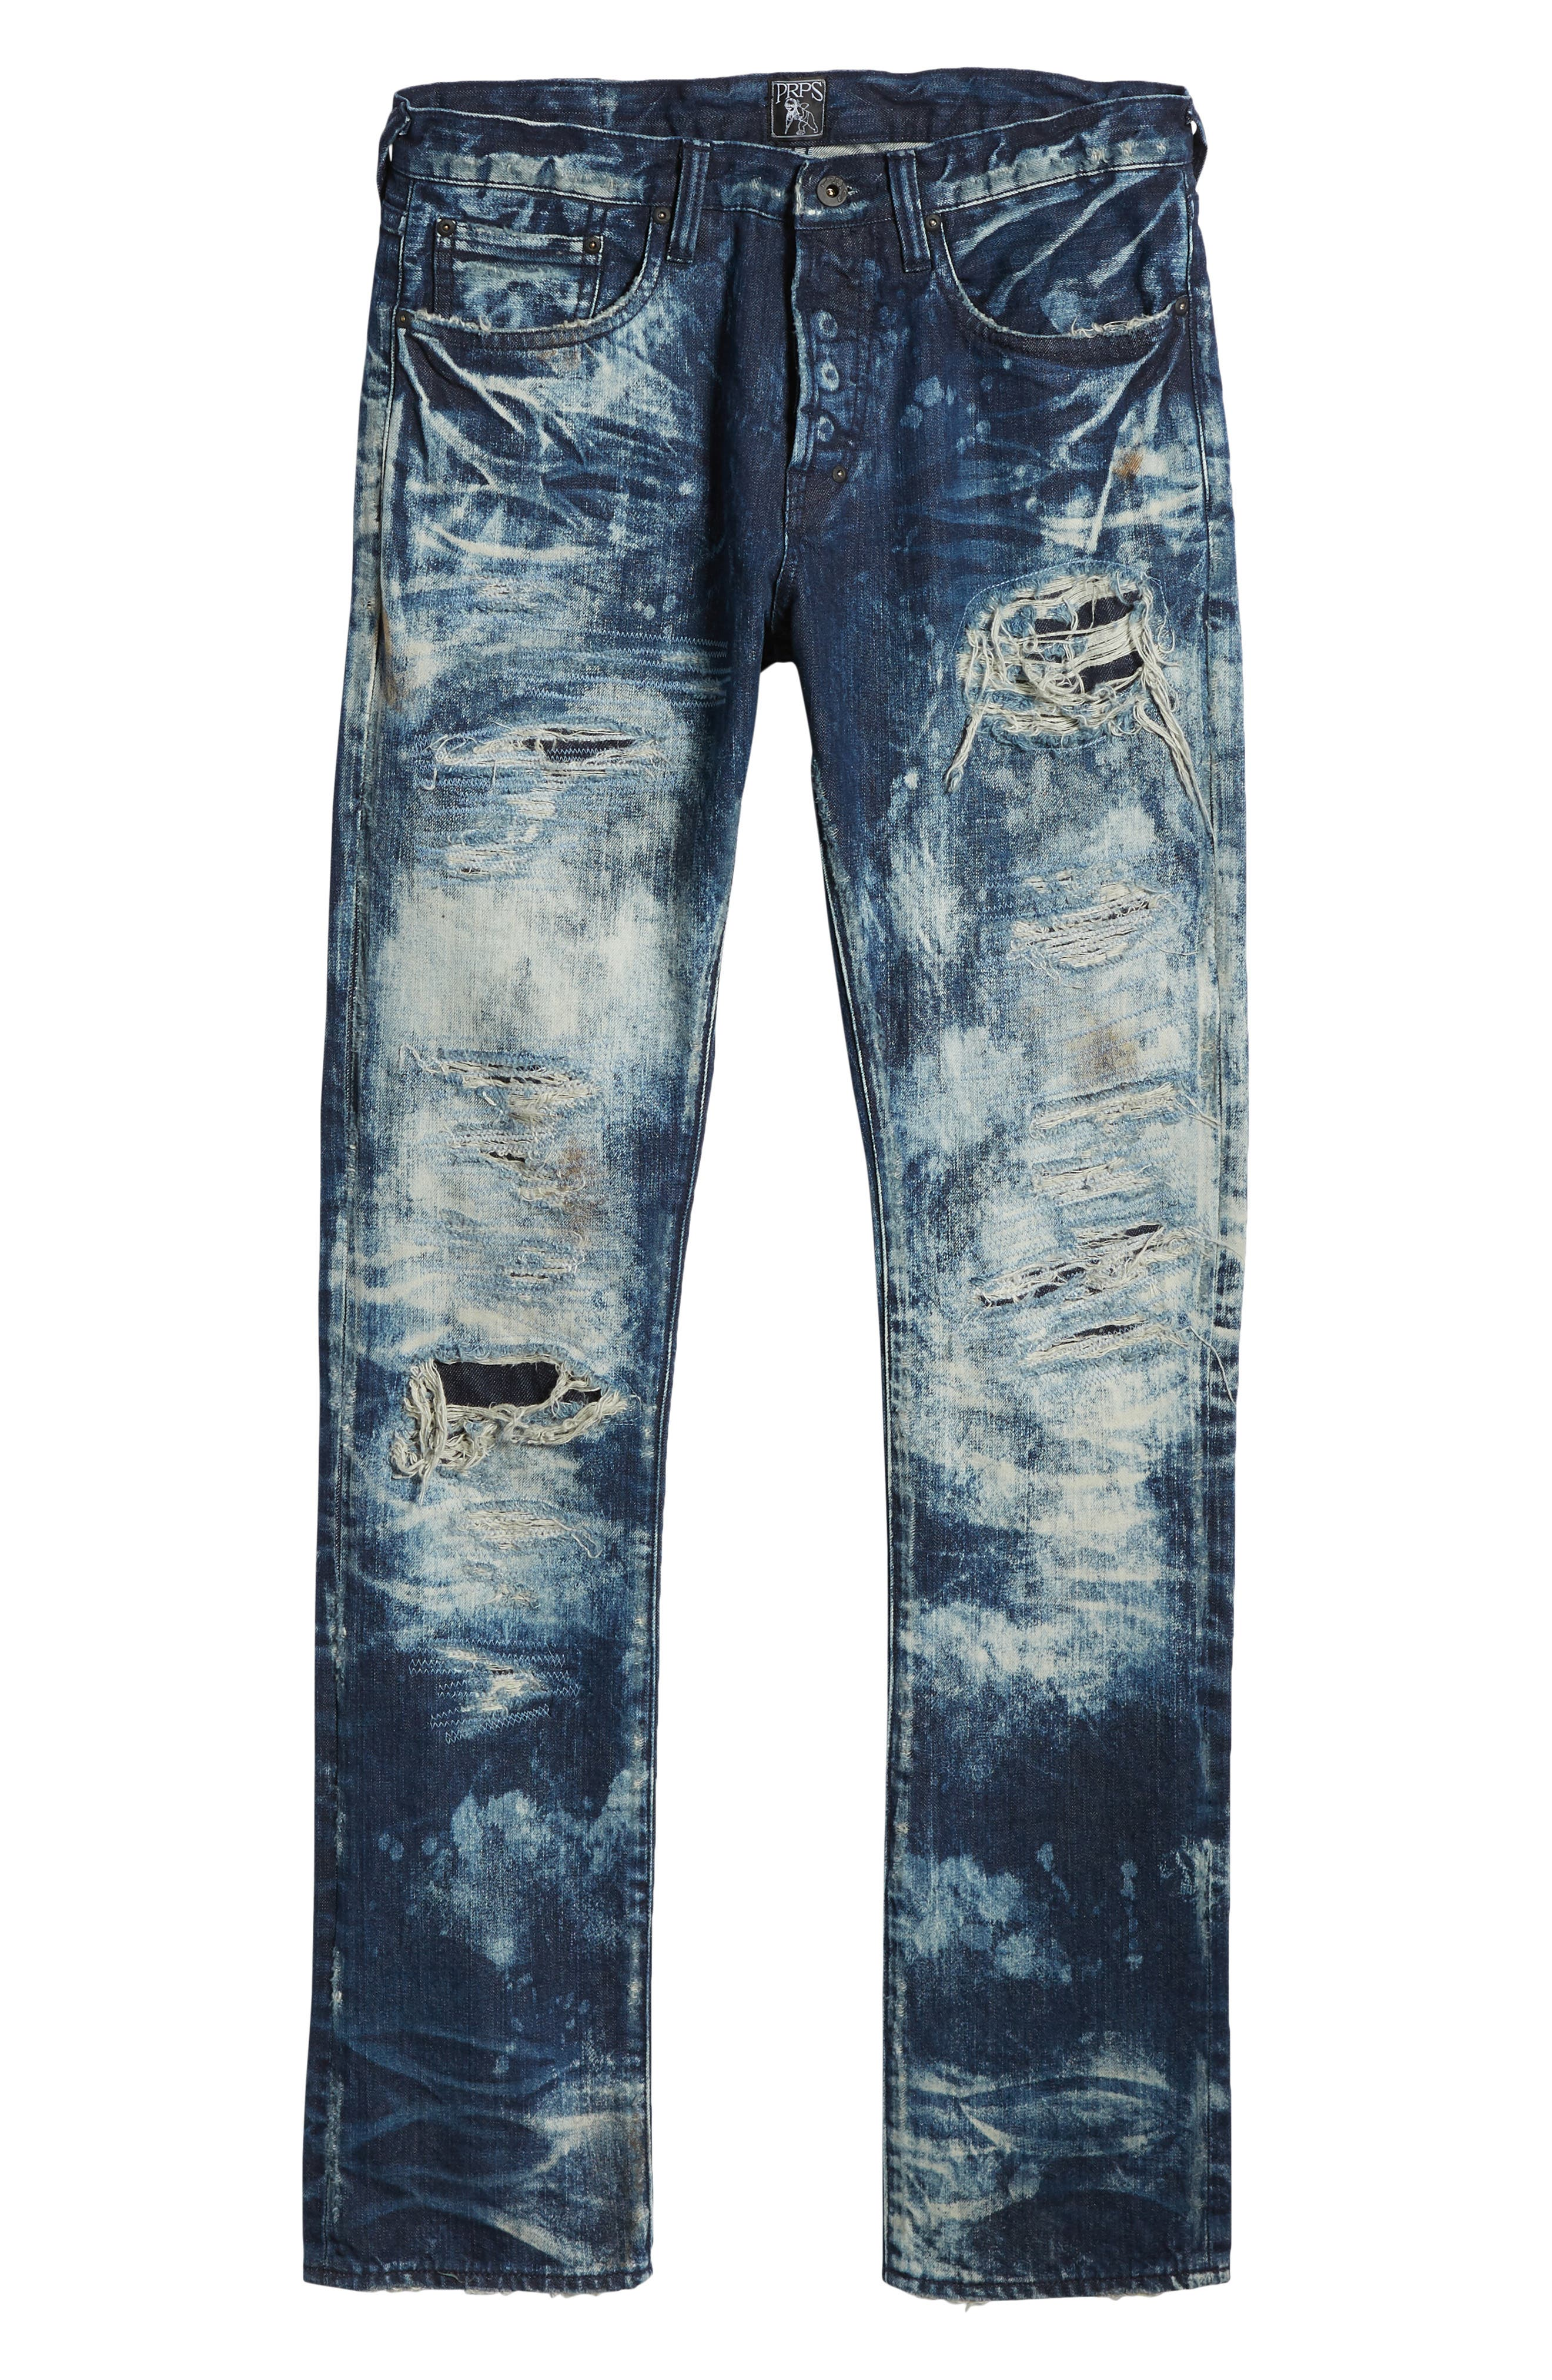 Le Sabre Slim Fit Jeans,                             Alternate thumbnail 6, color,                             Consolation